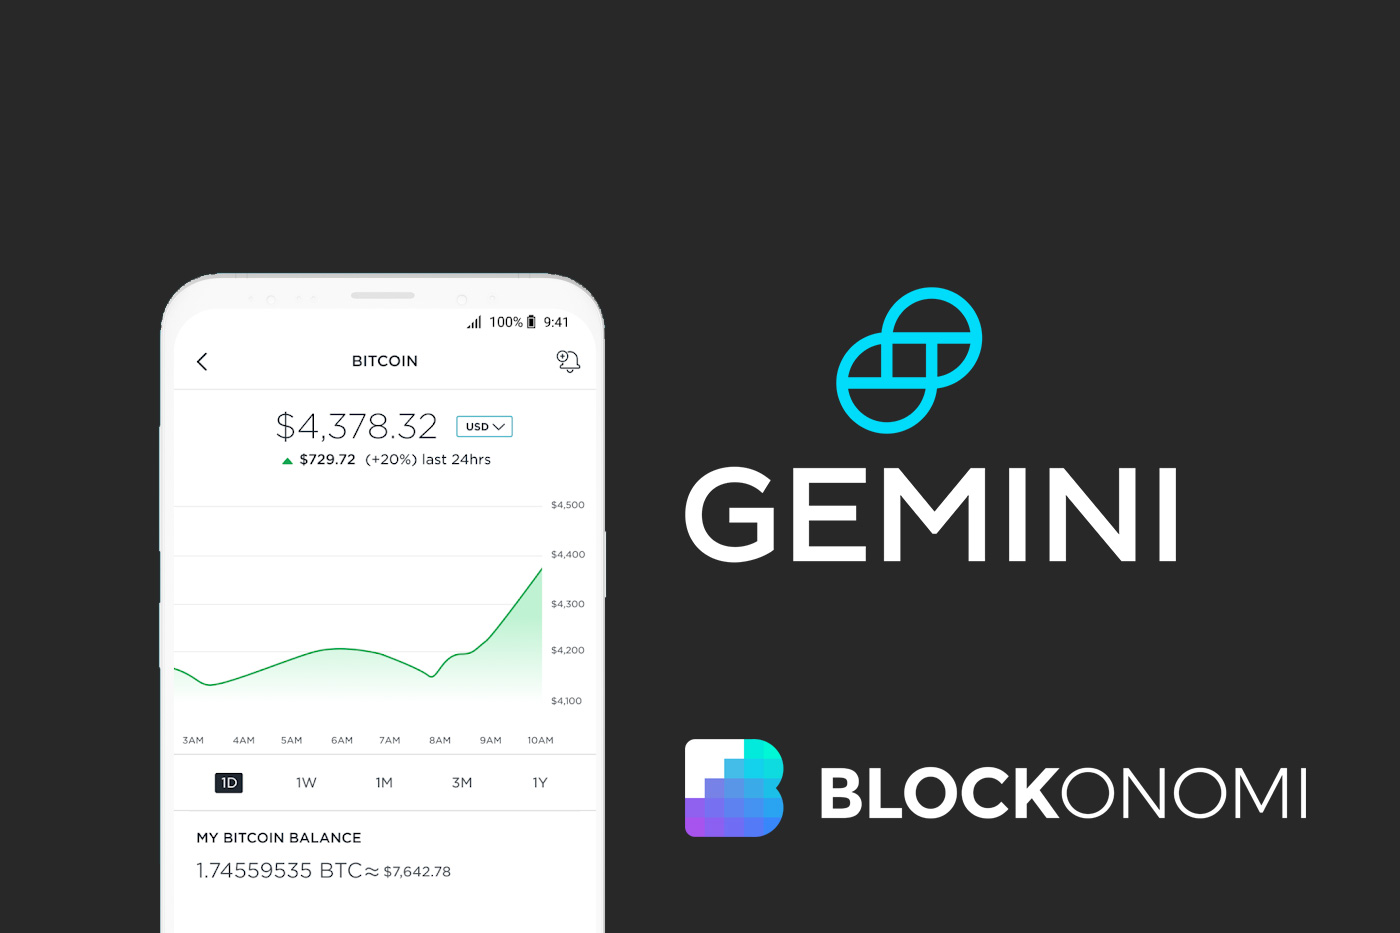 Gemini Announces Mobile Cryptocurrency Investment App